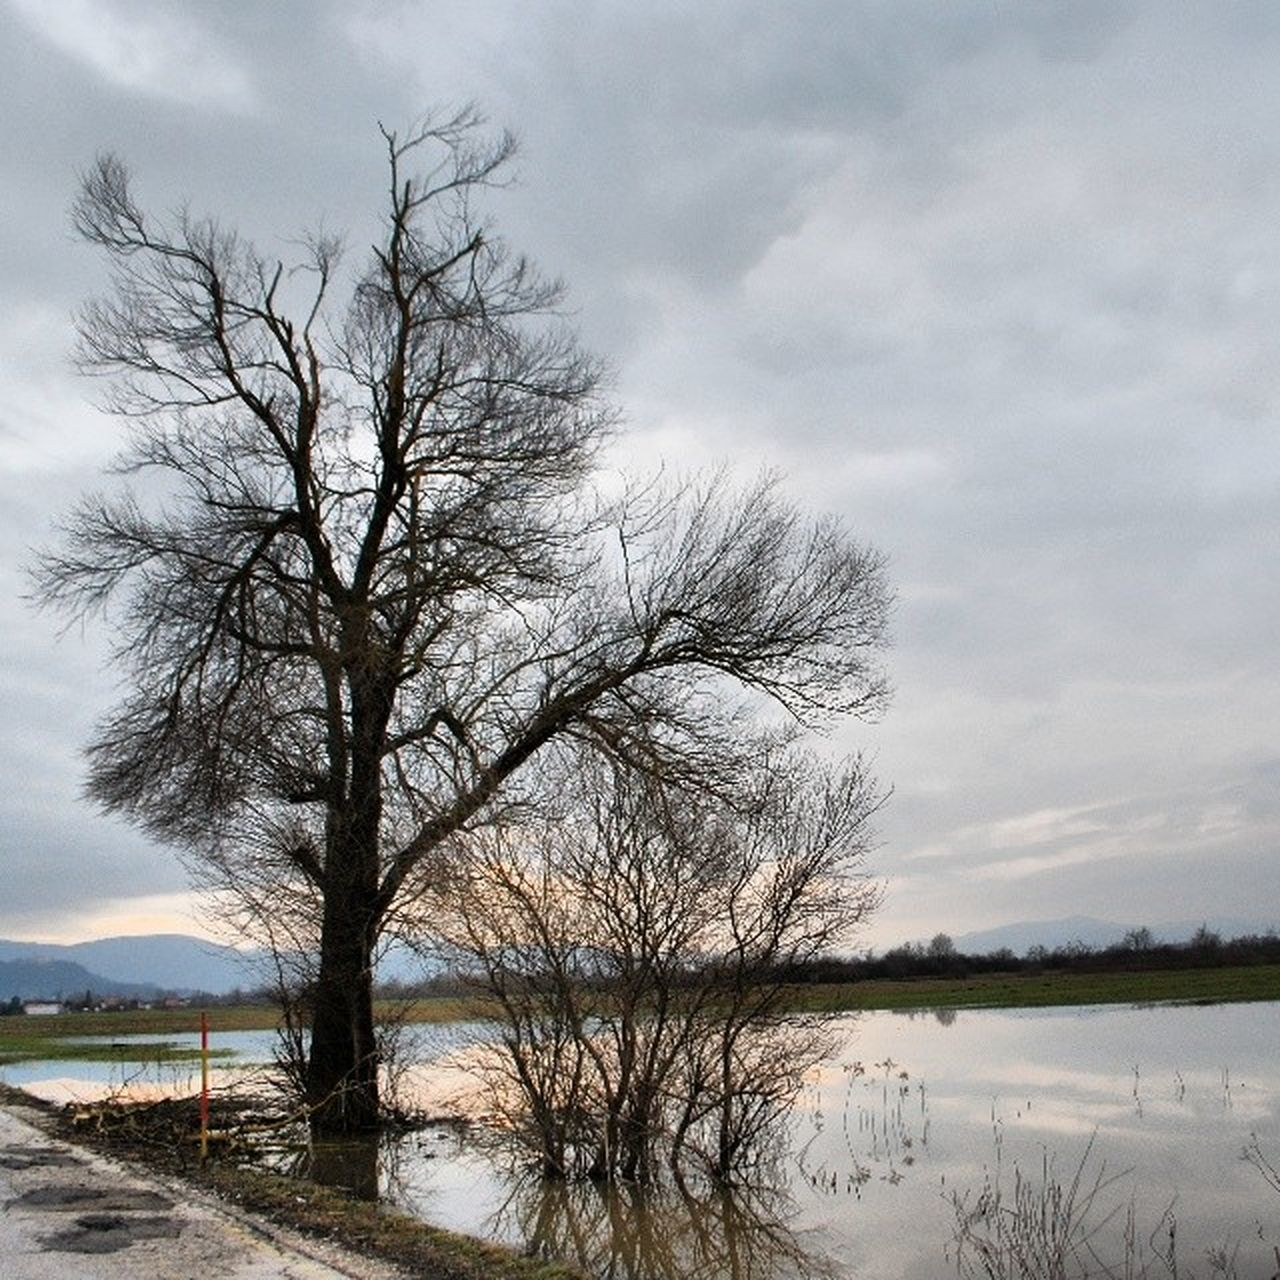 sky, bare tree, tree, nature, water, beauty in nature, tranquility, cloud - sky, tranquil scene, outdoors, scenics, day, no people, branch, landscape, lake